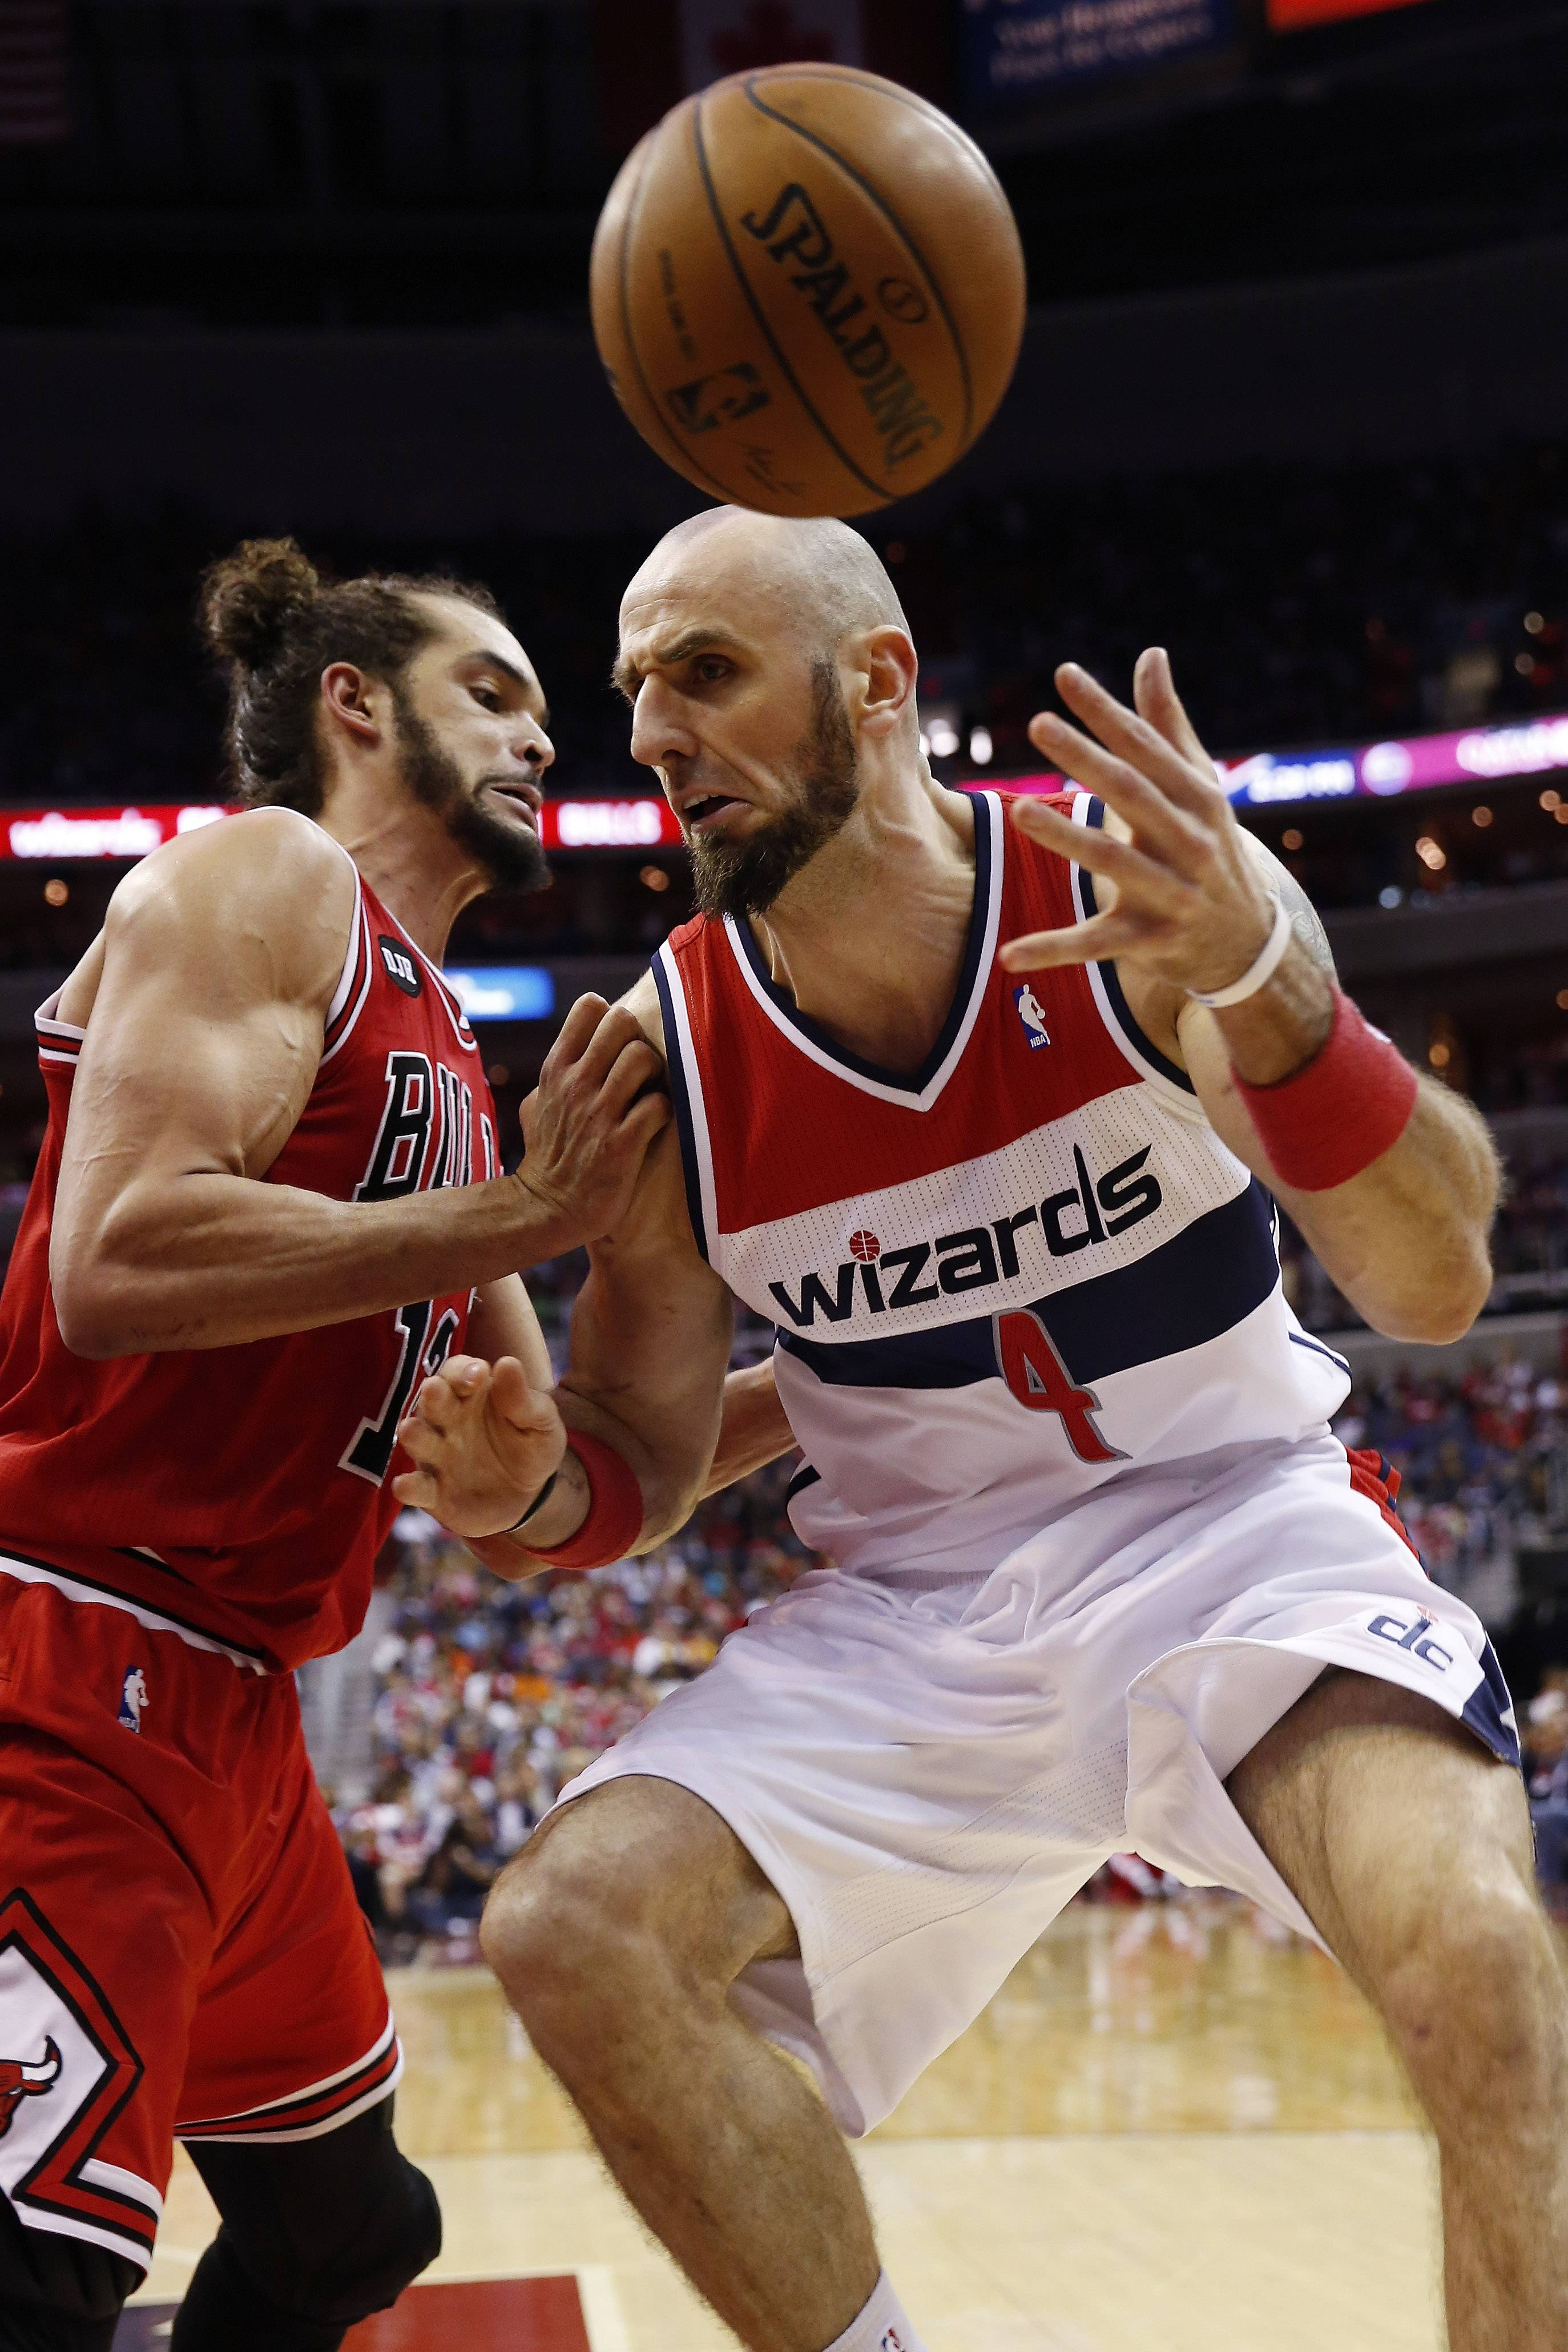 Washington Wizards center Marcin Gortat (4) and Chicago Bulls center Joakim Noah (13) battle for control of the ball during the second half.